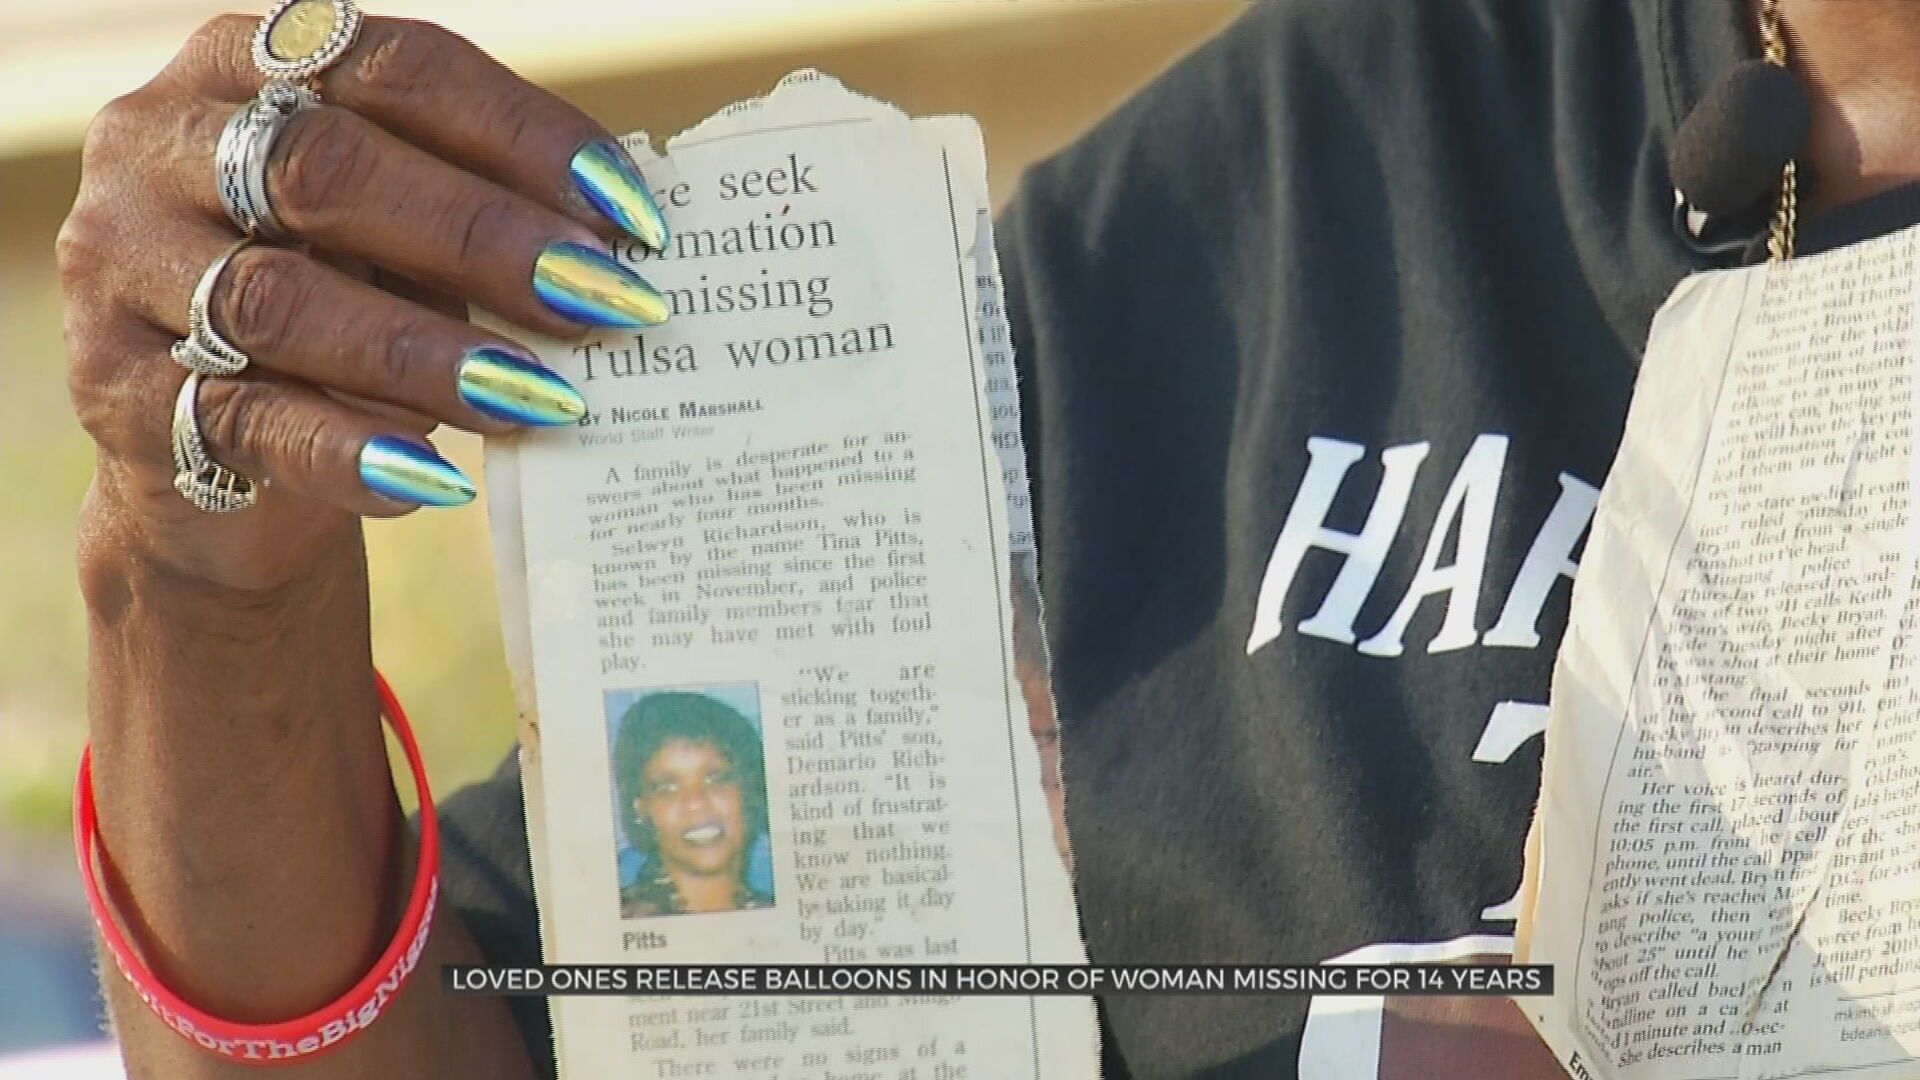 Loved Ones Release Balloons In Honor Of Tulsa Woman Missing For 14 Years